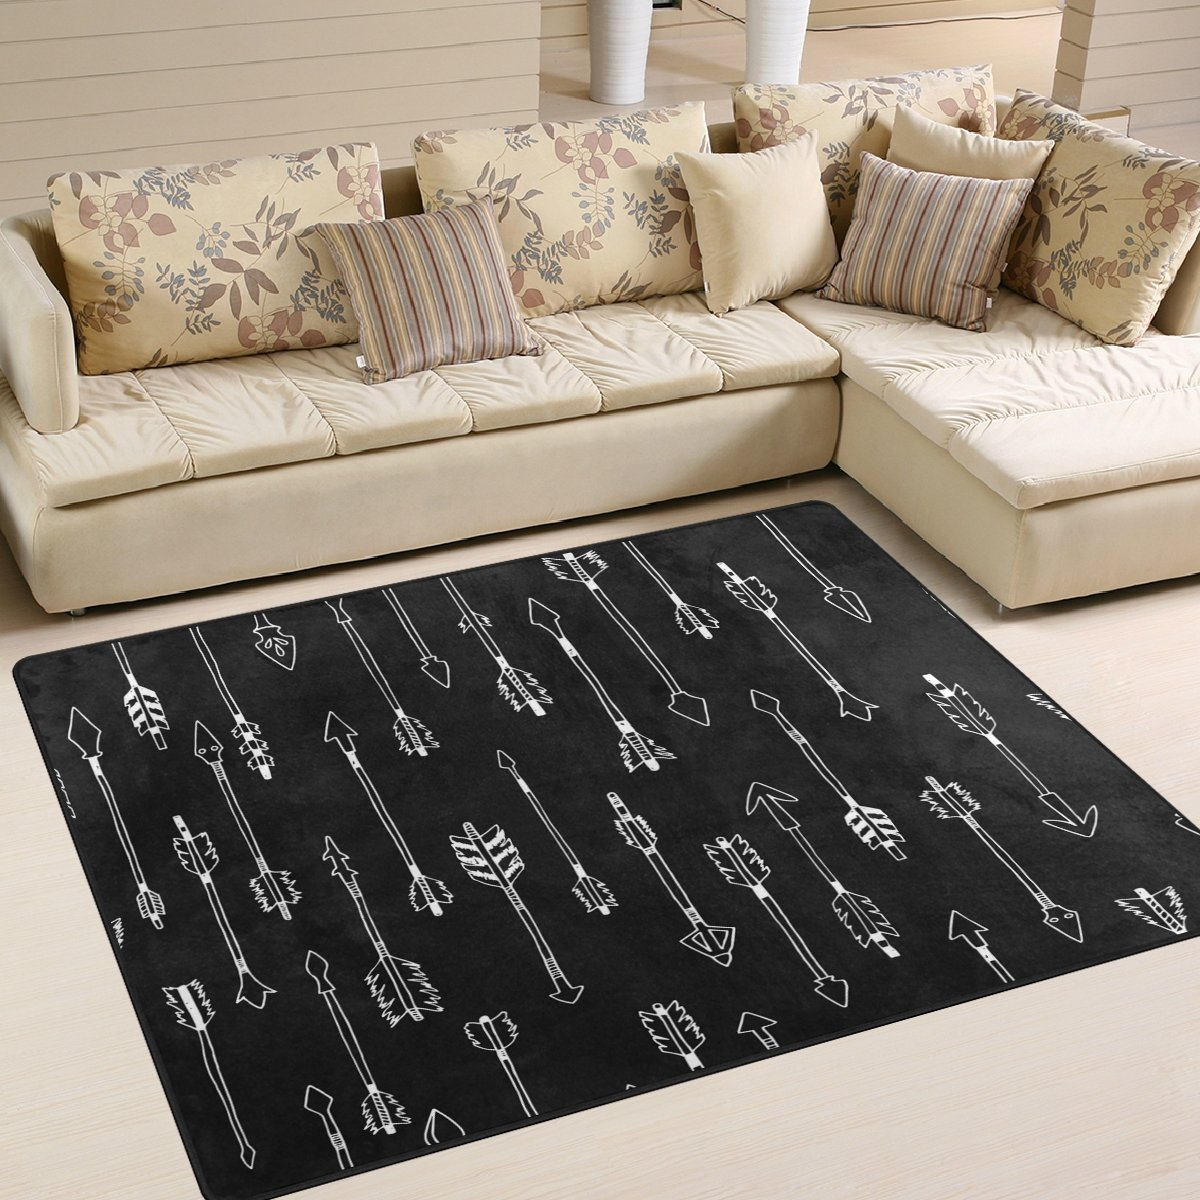 ALAZA Cartoon White Arrow Black Area Rug Rugs for Living Room Bedroom 5'3 x 4' g3512138p147c162s244